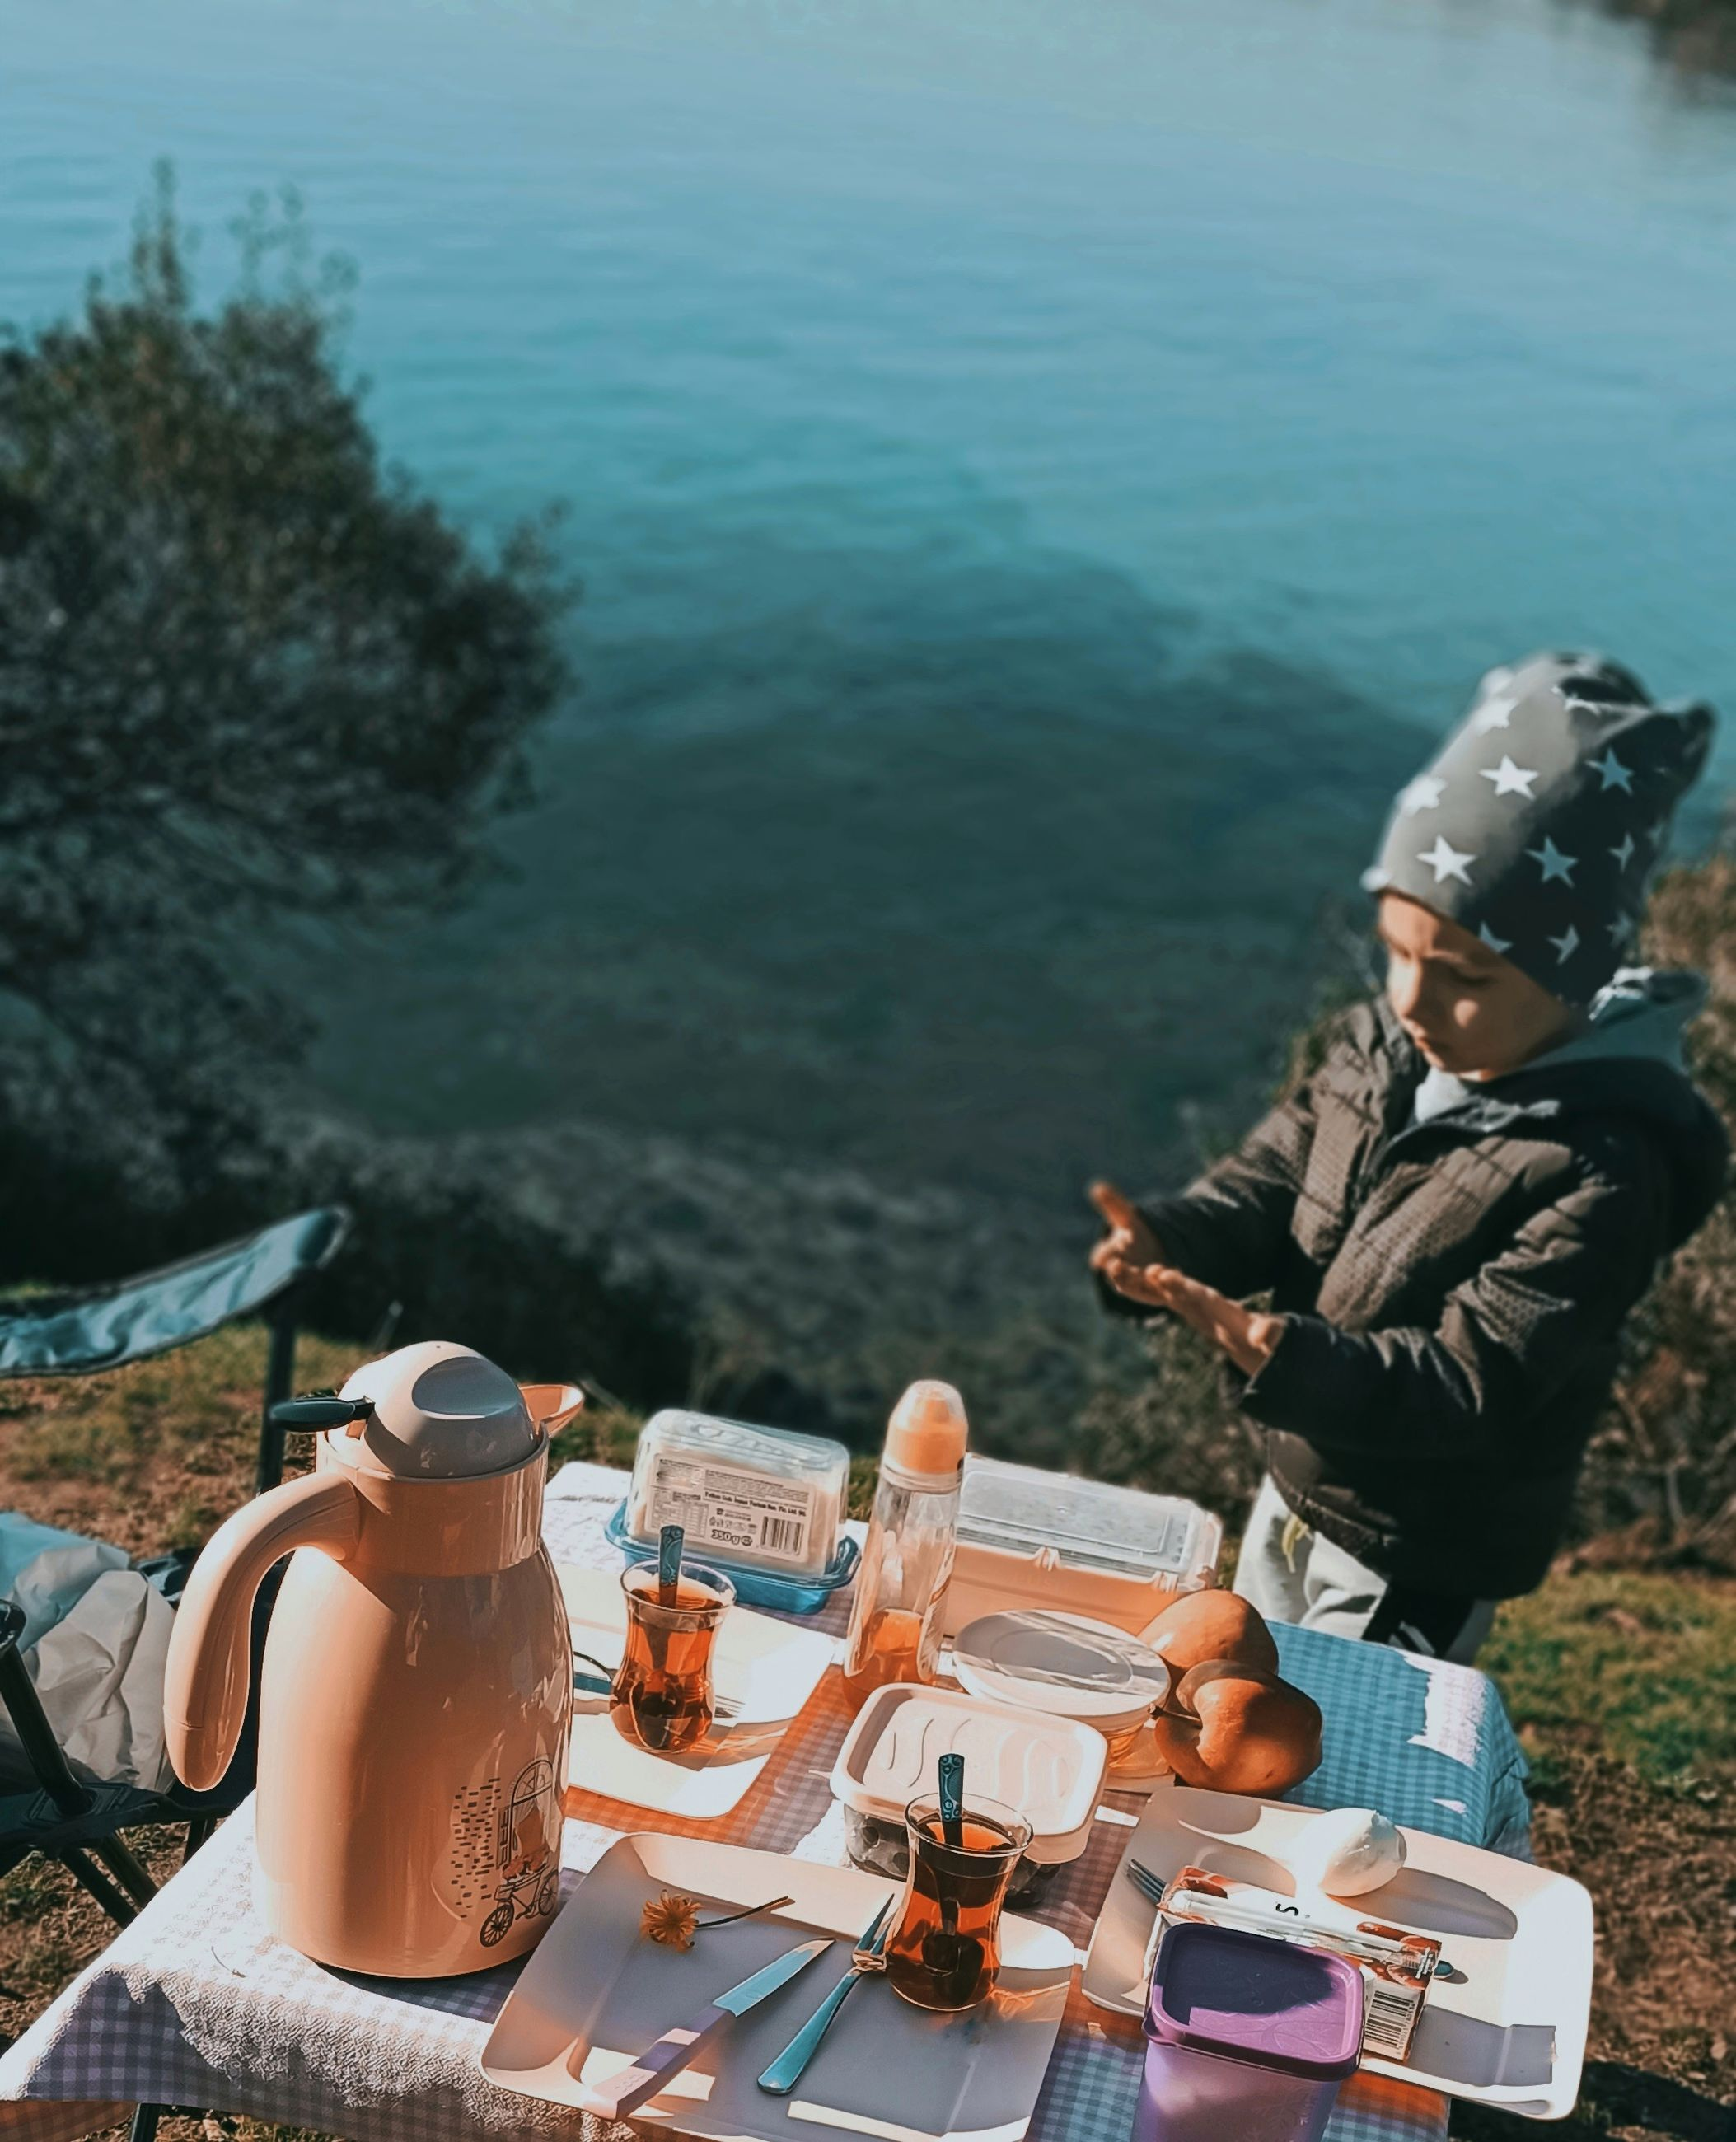 water, nature, sitting, adult, leisure activity, men, high angle view, day, food and drink, relaxation, drink, tree, lake, lifestyles, outdoors, women, plant, land, table, two people, young adult, vacation, refreshment, trip, holiday, full length, togetherness, sunlight, casual clothing